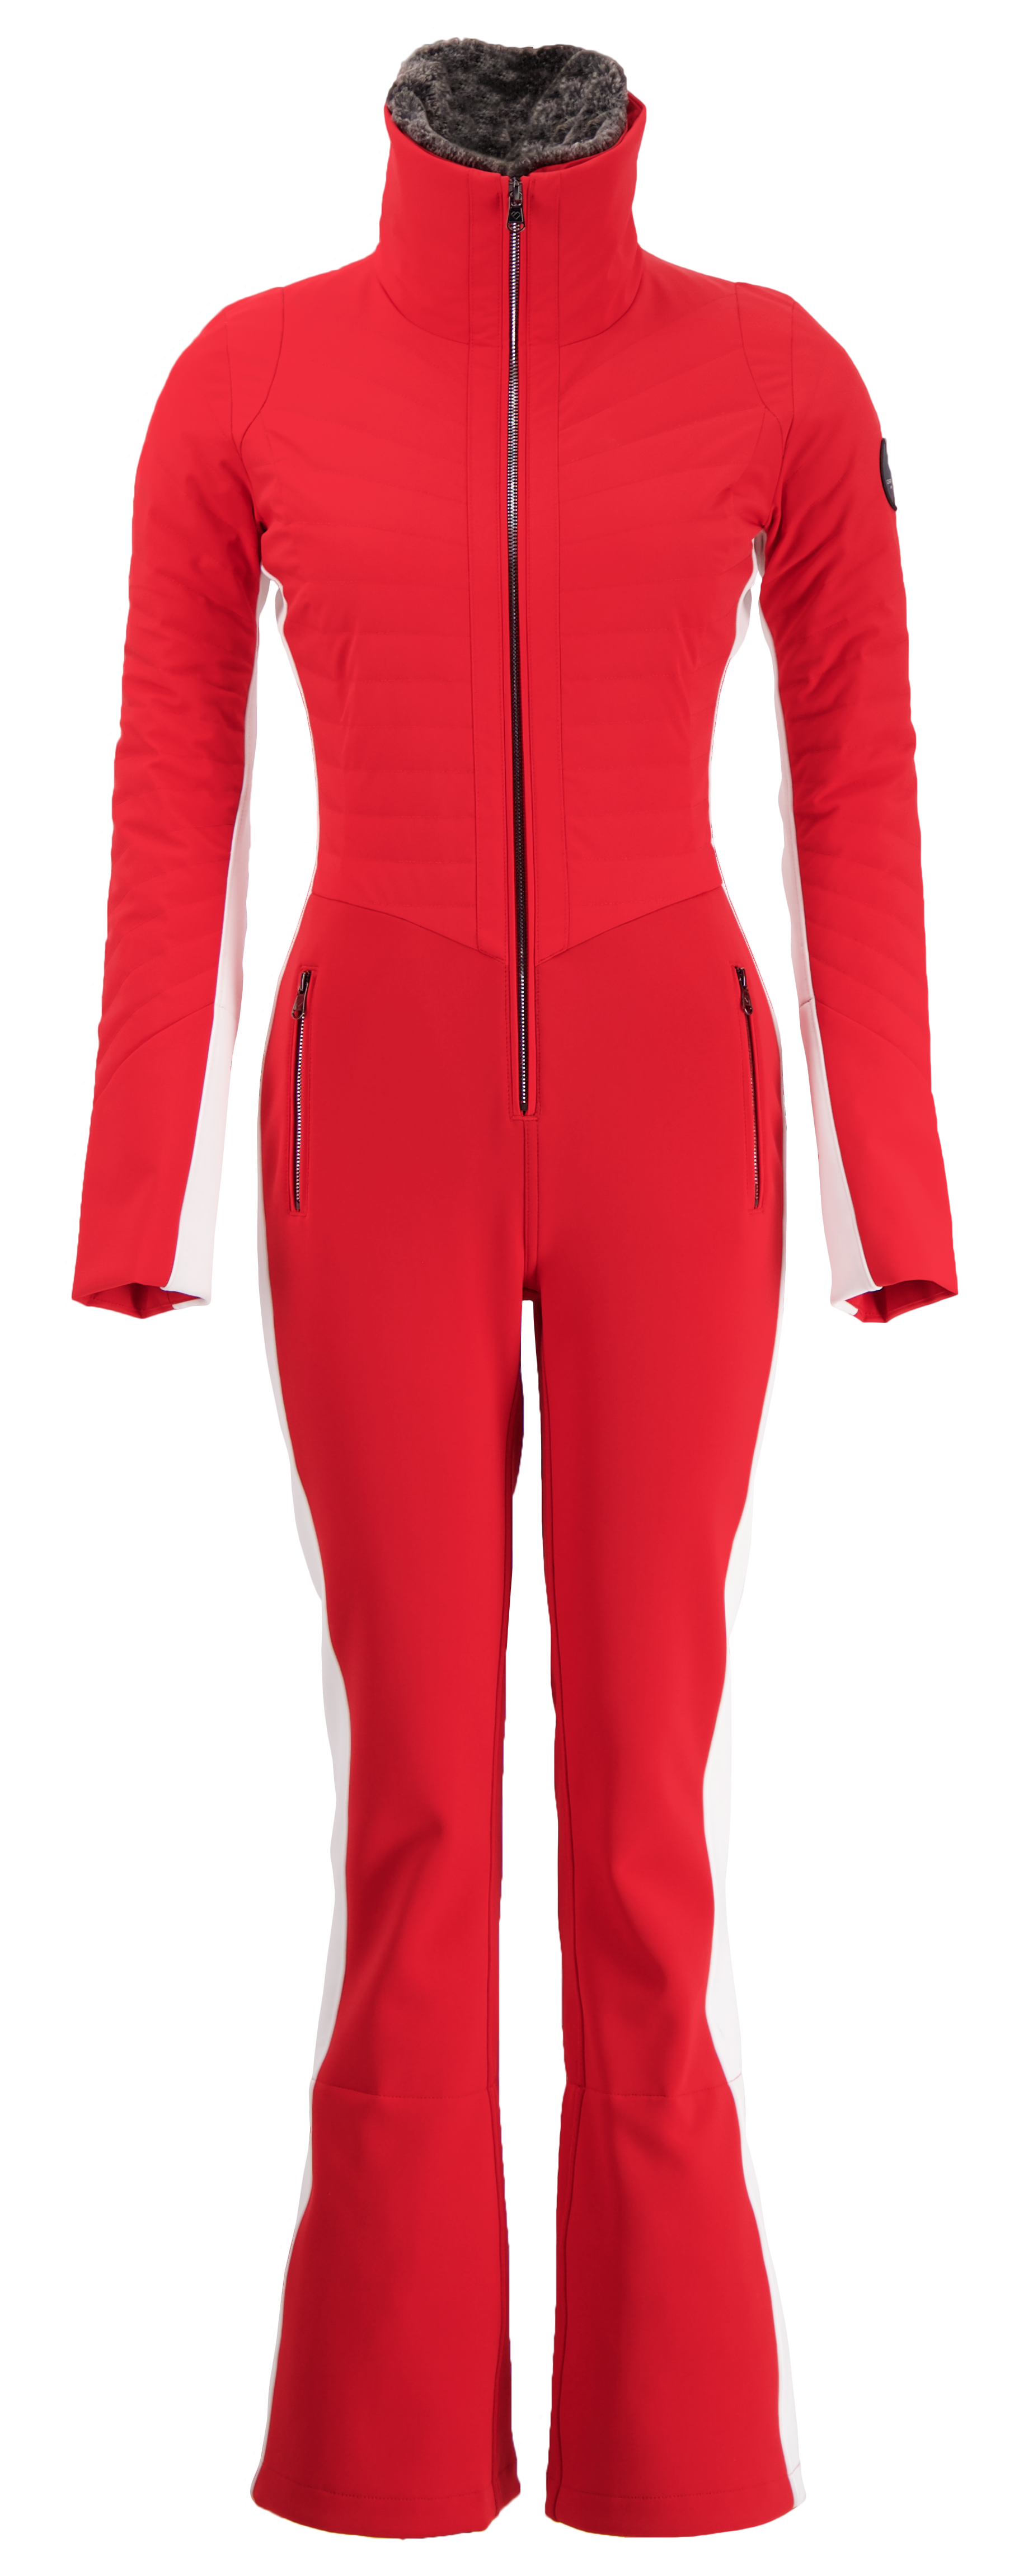 SKI Gearfinder 2016-17 Mens Mixed West Opener